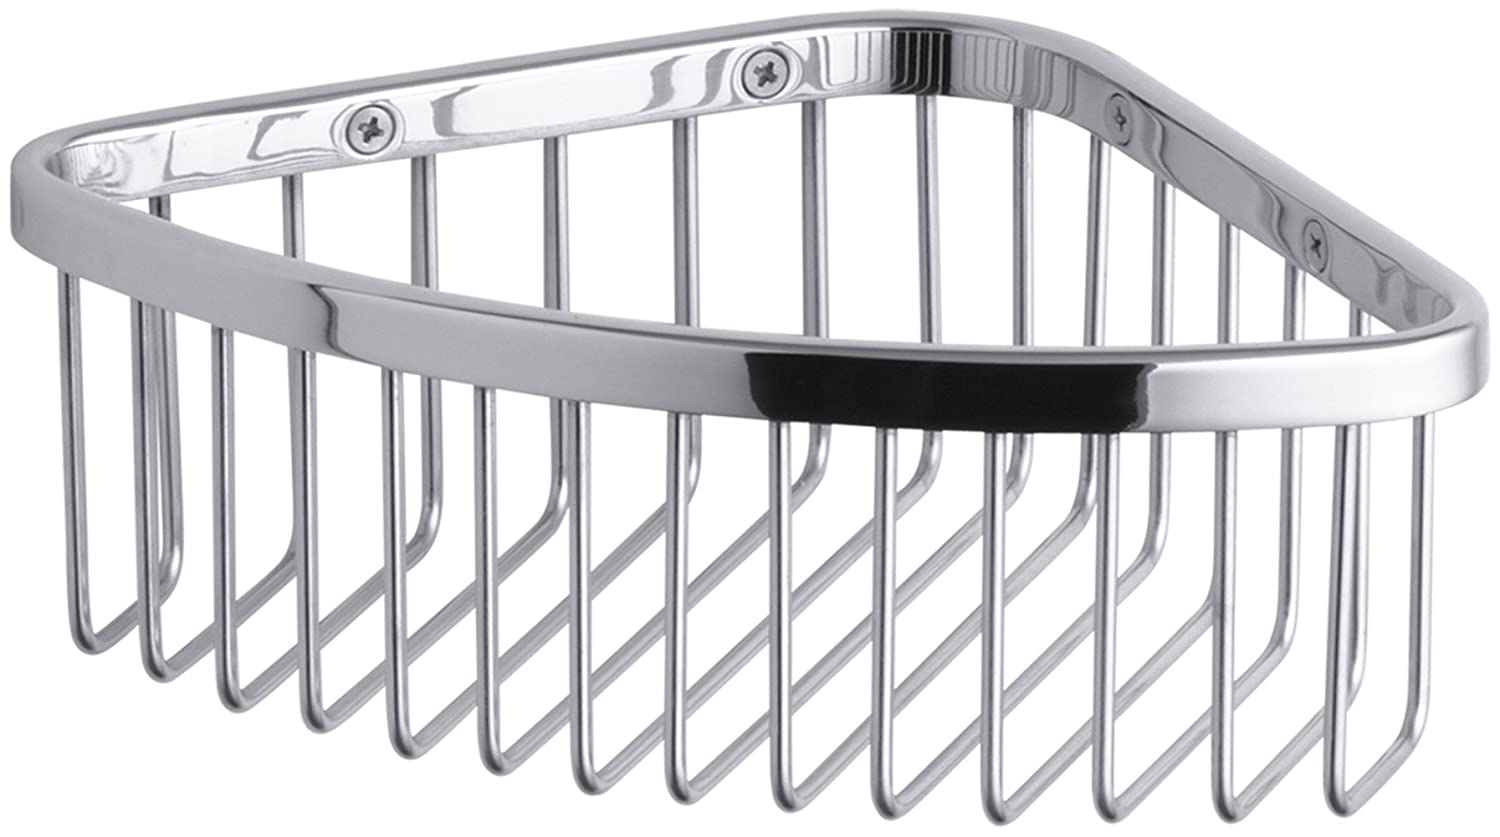 Amazon.com: KOHLER K-1896-SN Medium Shower Basket, Vibrant Polished ...